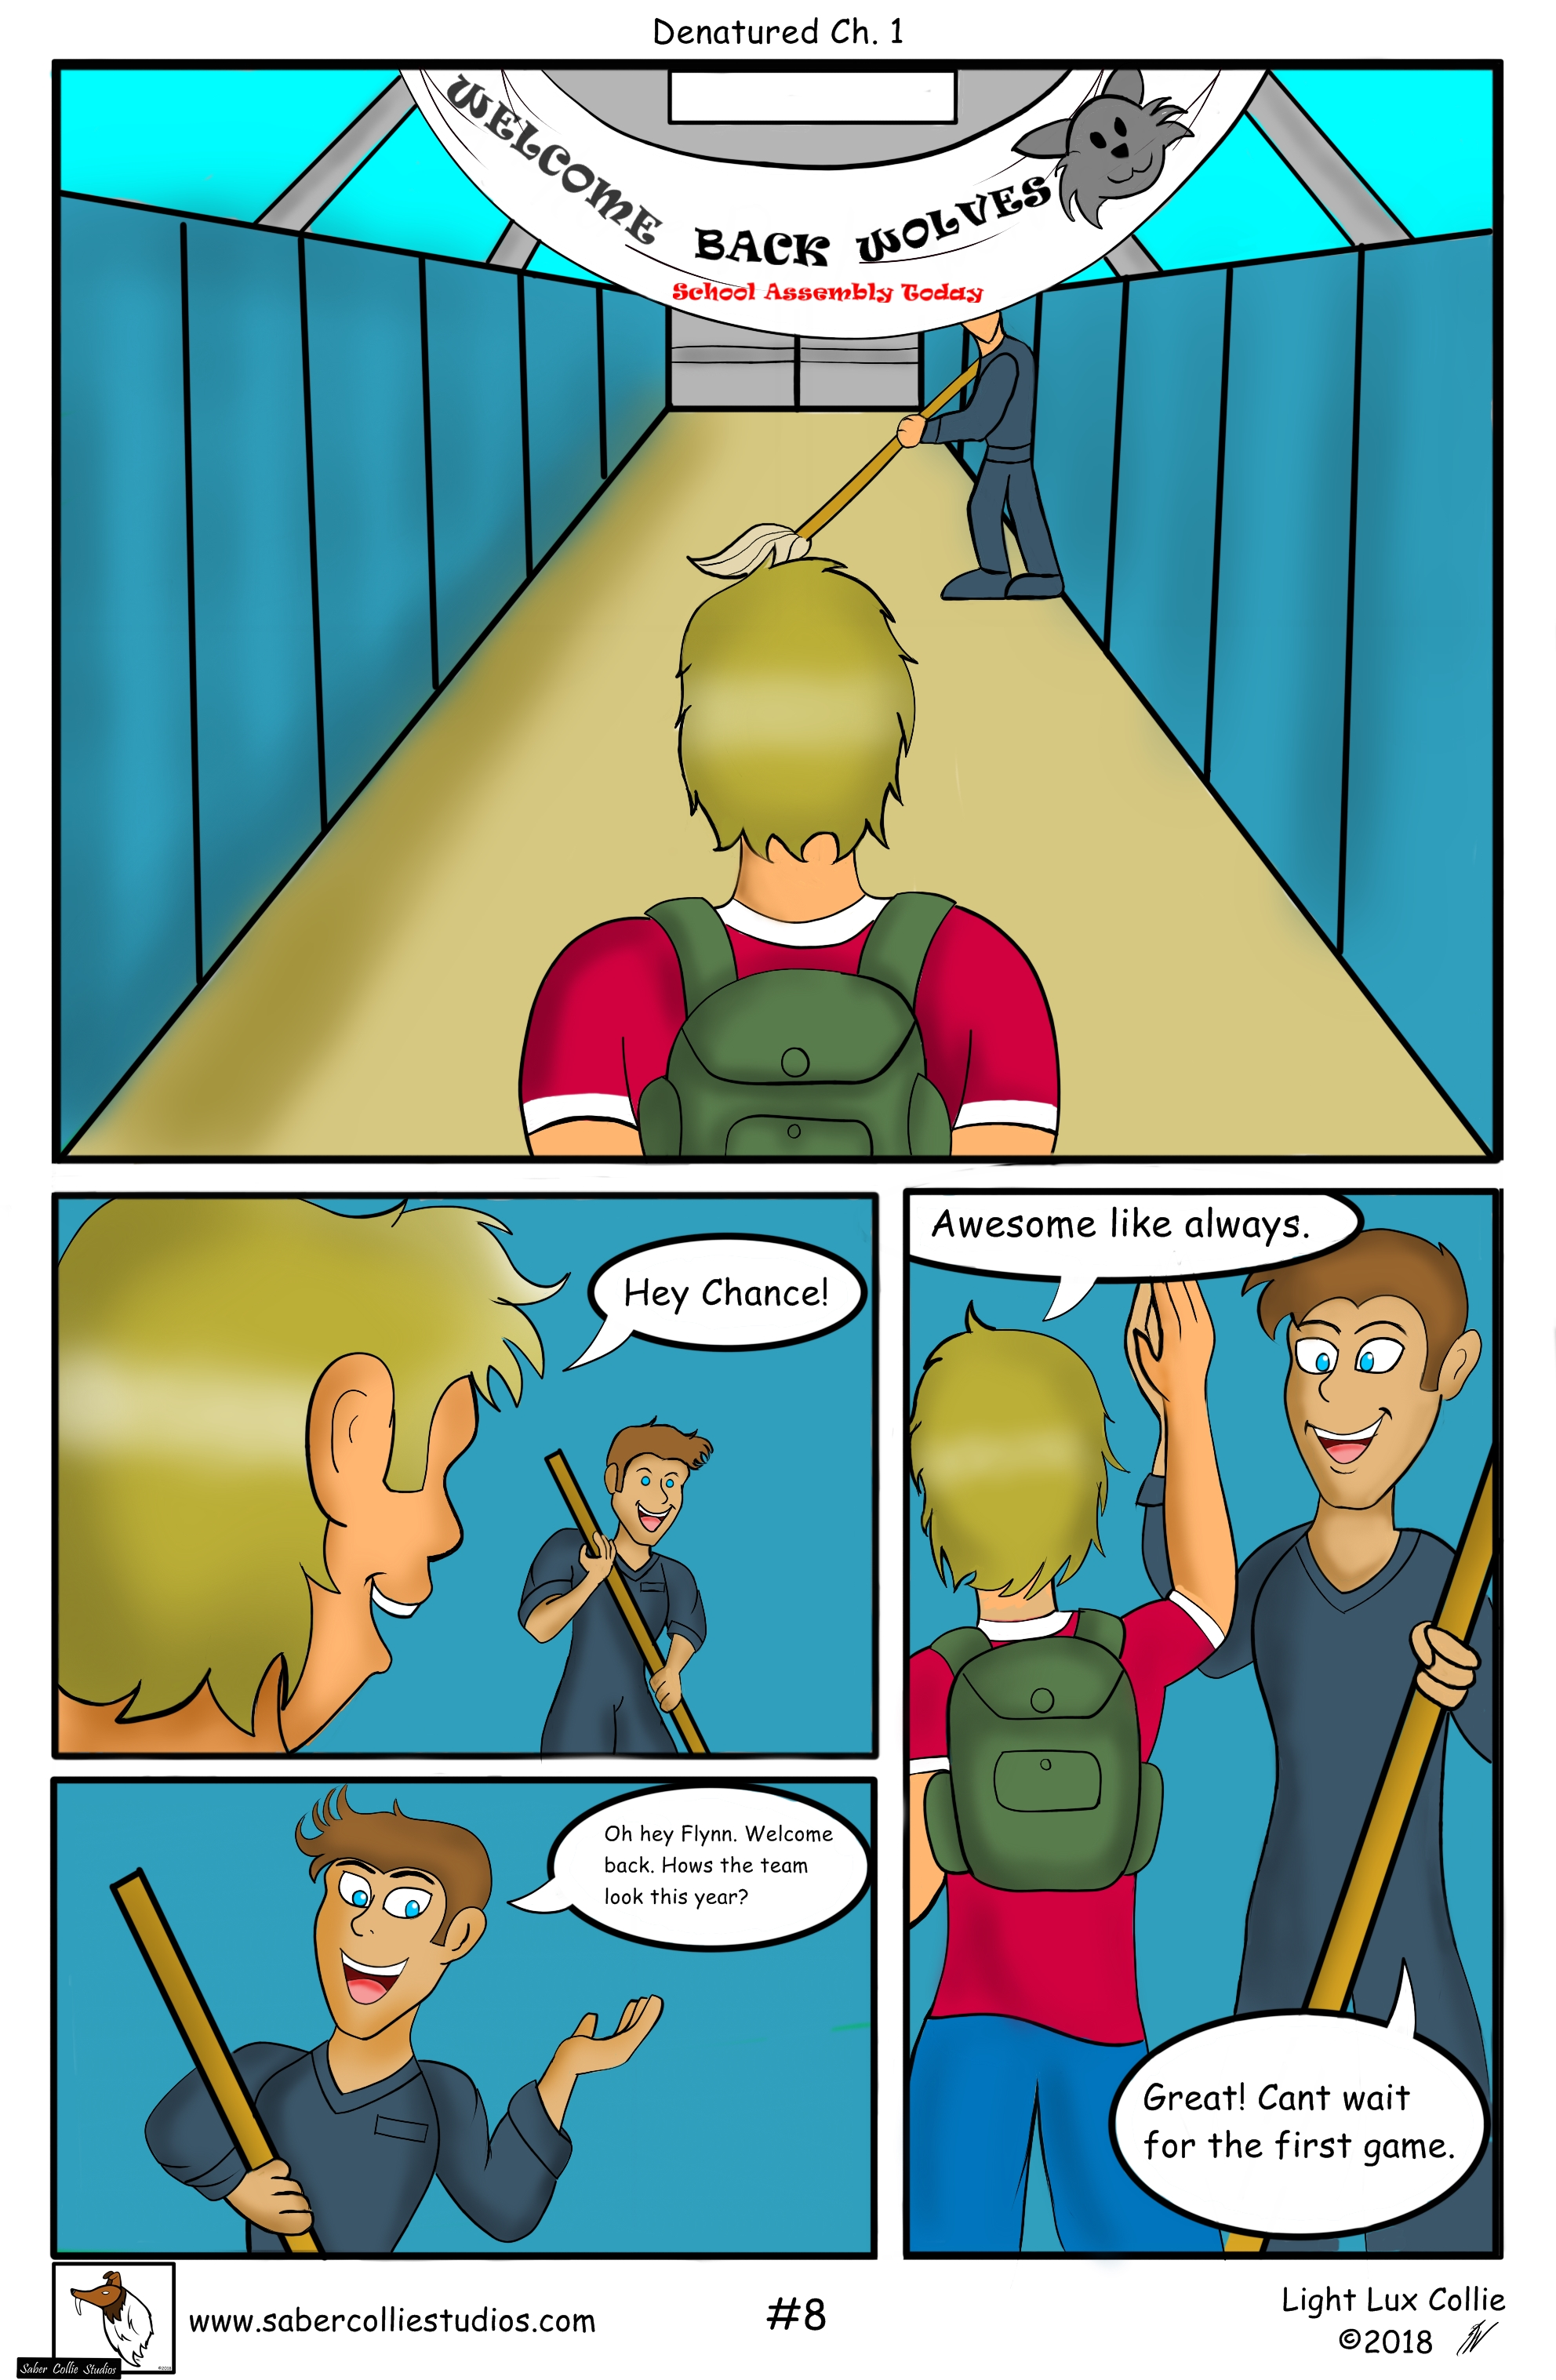 Denatured Chapter 1 Page 8.jpg